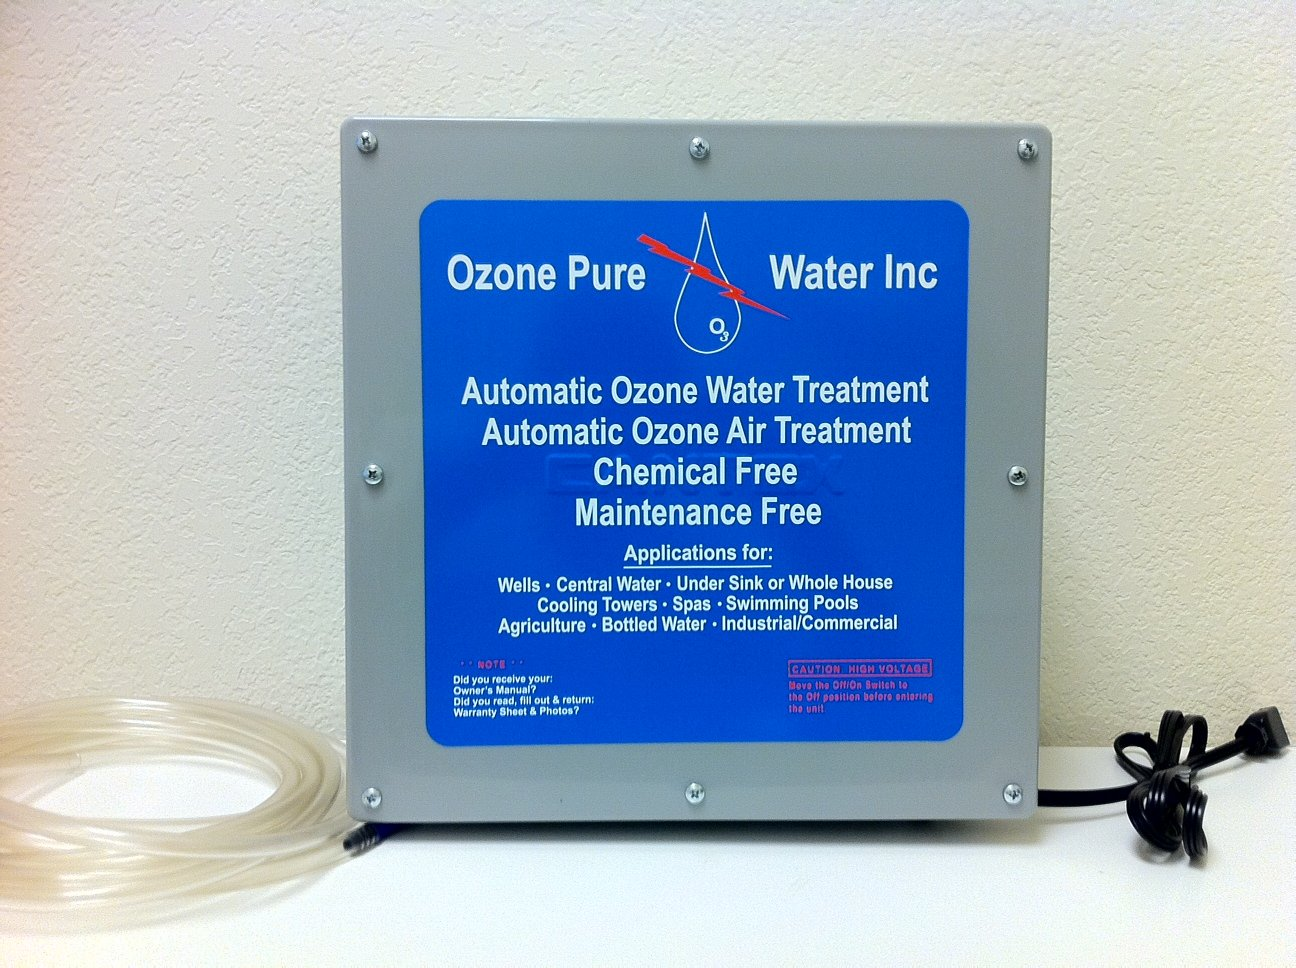 Best water filtration system for well water - Ozone Pure Ozonator